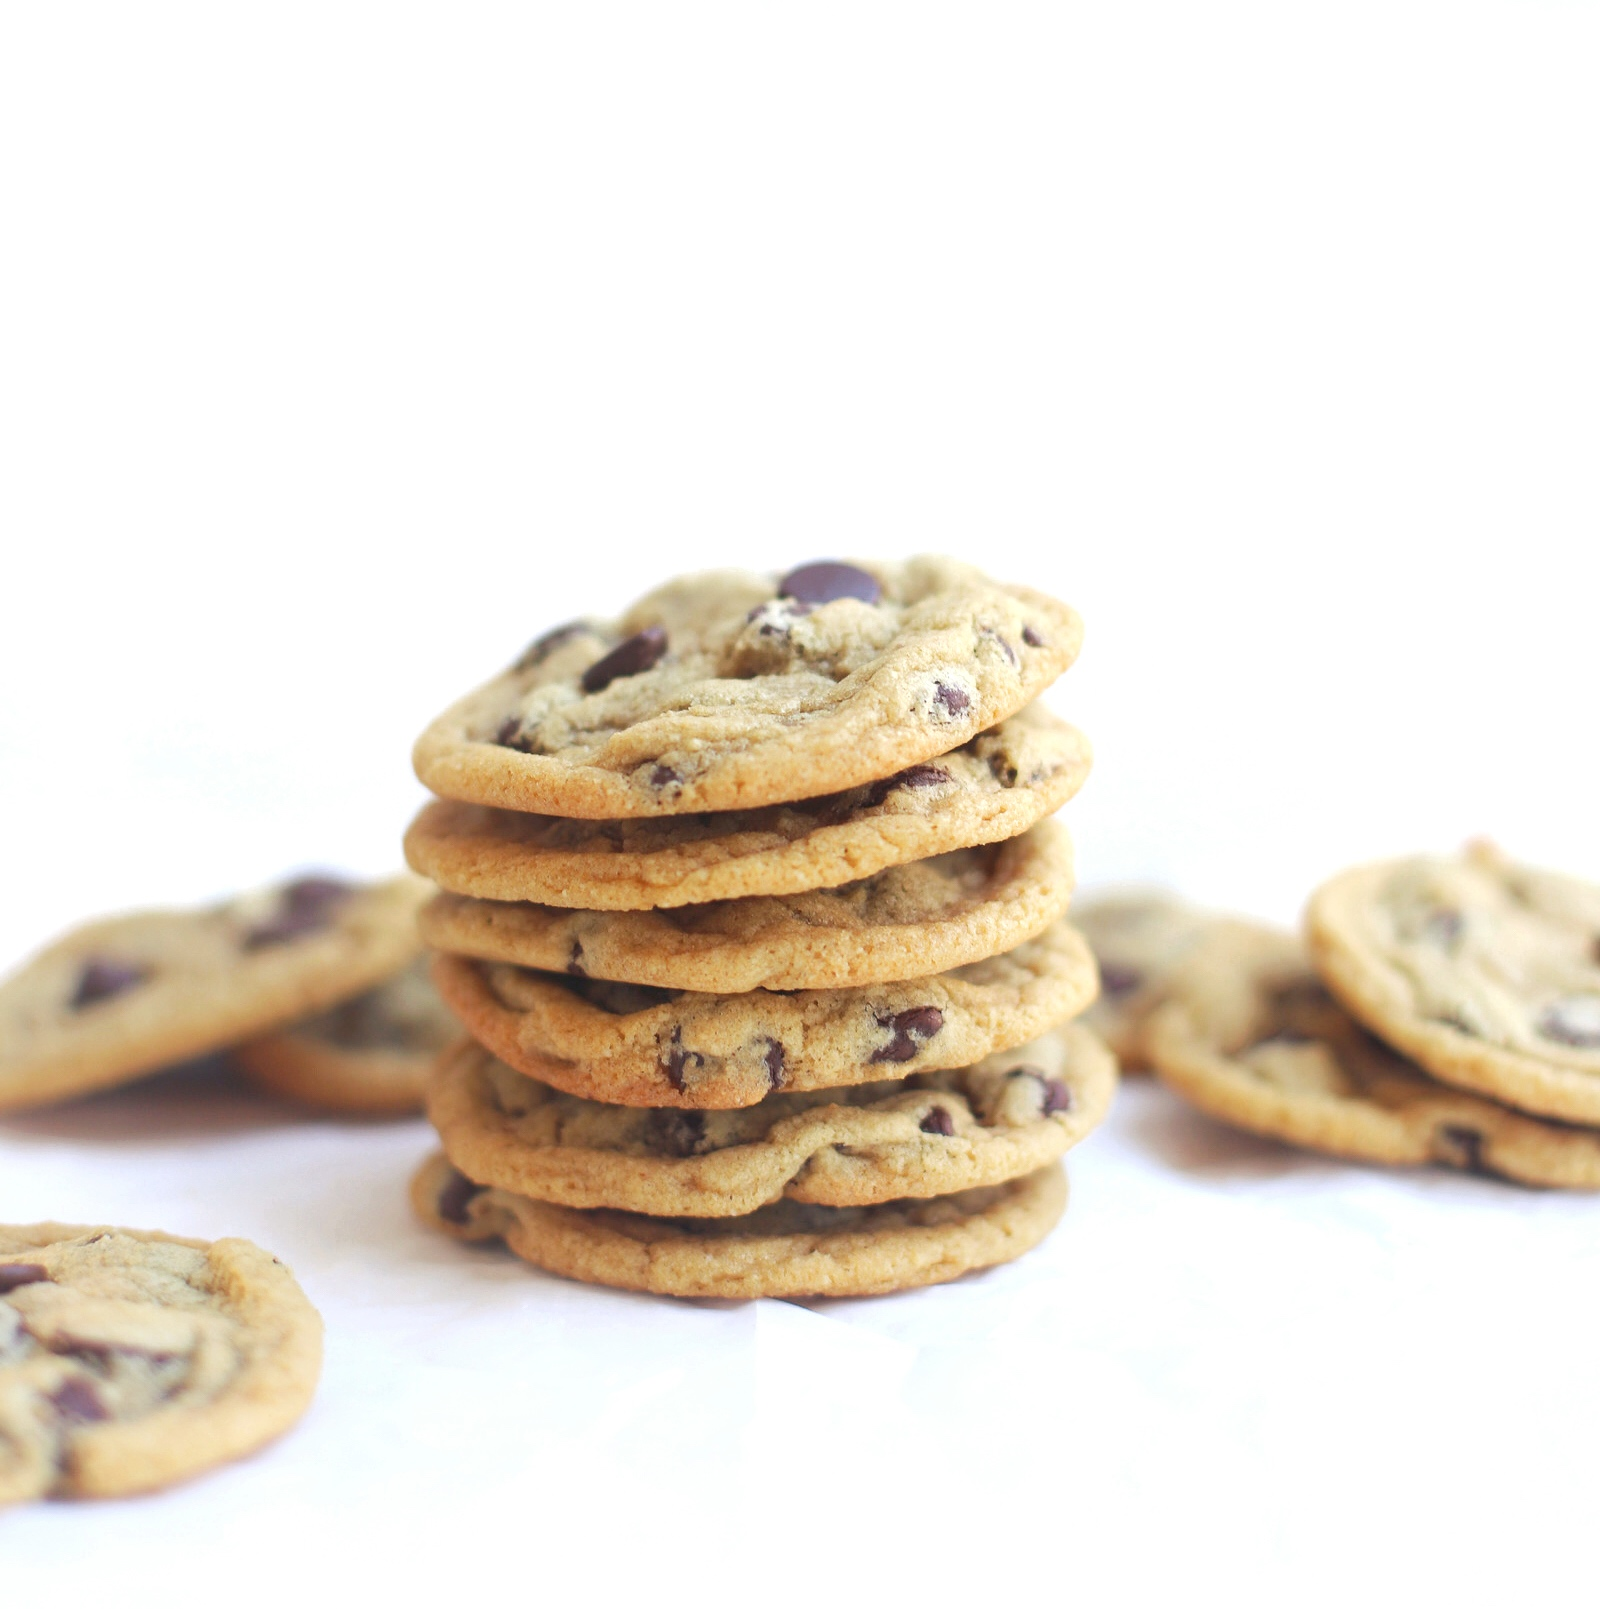 These are the very best dairy free chocolate chip cookies ever. Made in one bowl, the easy recipe results in ooey gooey, oh-so-soft, crisp and chewy, perfect chocolate chip cookies every time. Plus, we have a few tricks for making these cookies vegan and/or gluten-free too! | glitterinc.com | @glitterinc